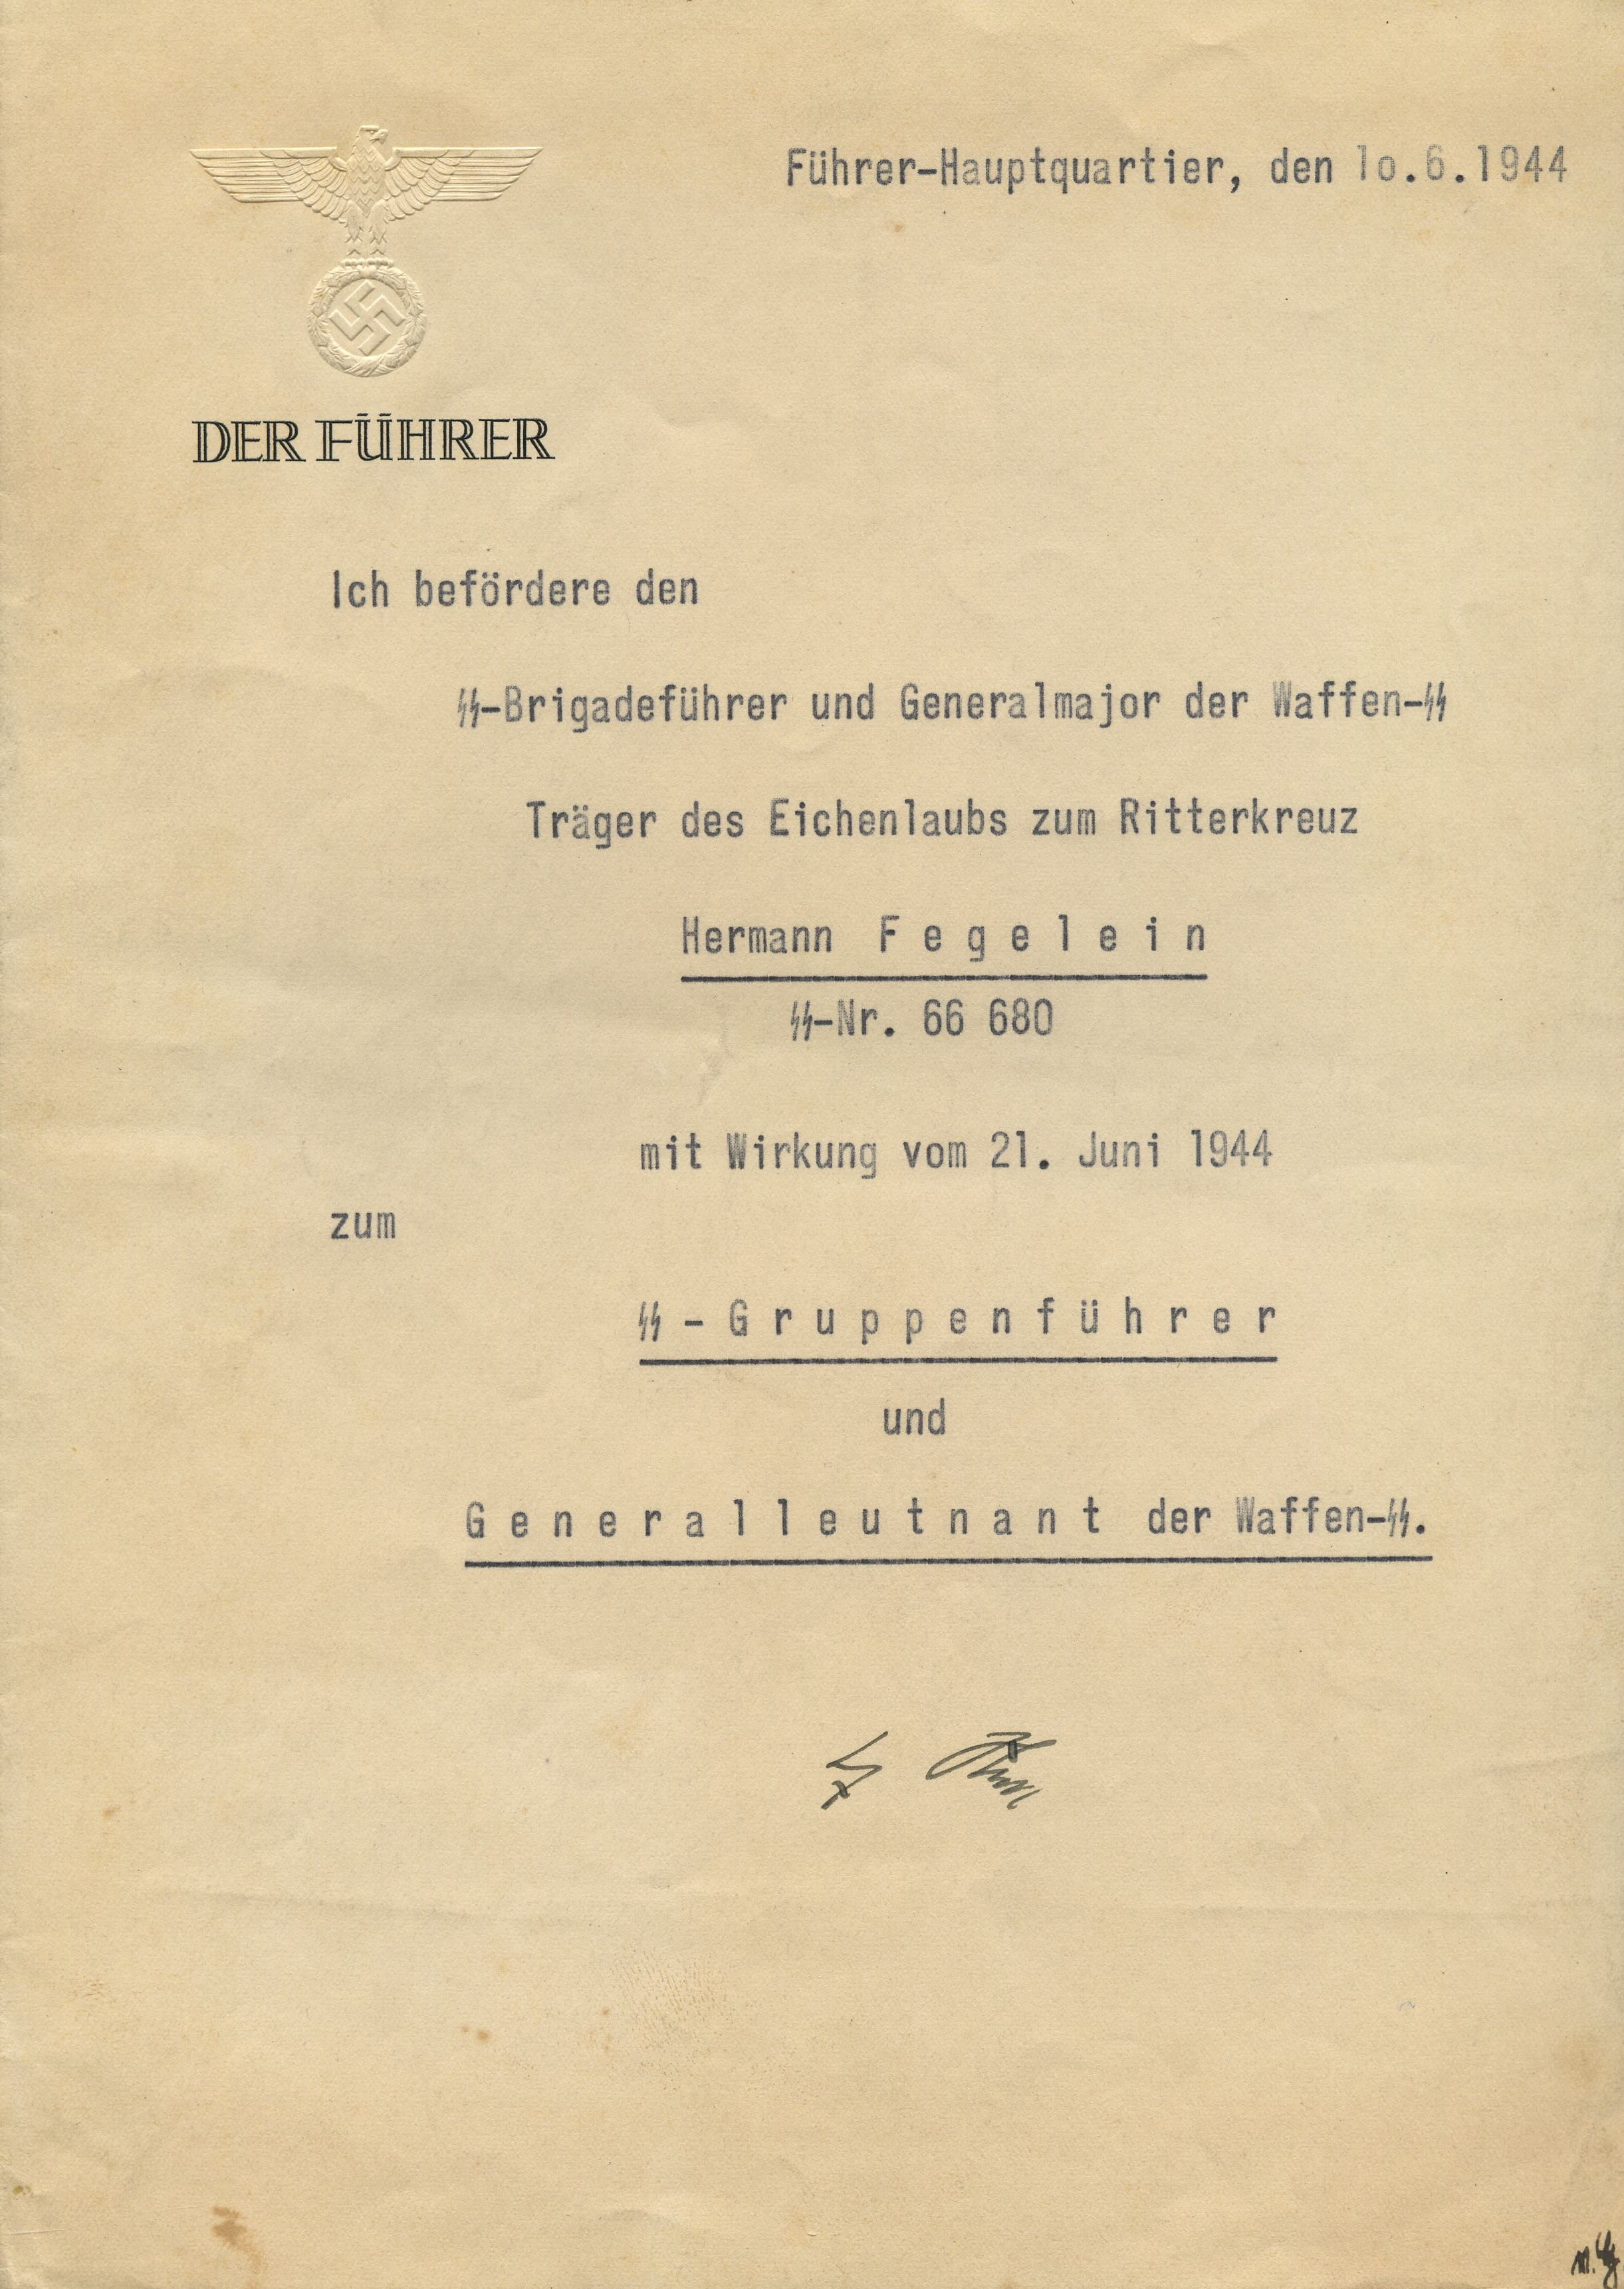 Hitler's papers with signature and stamp